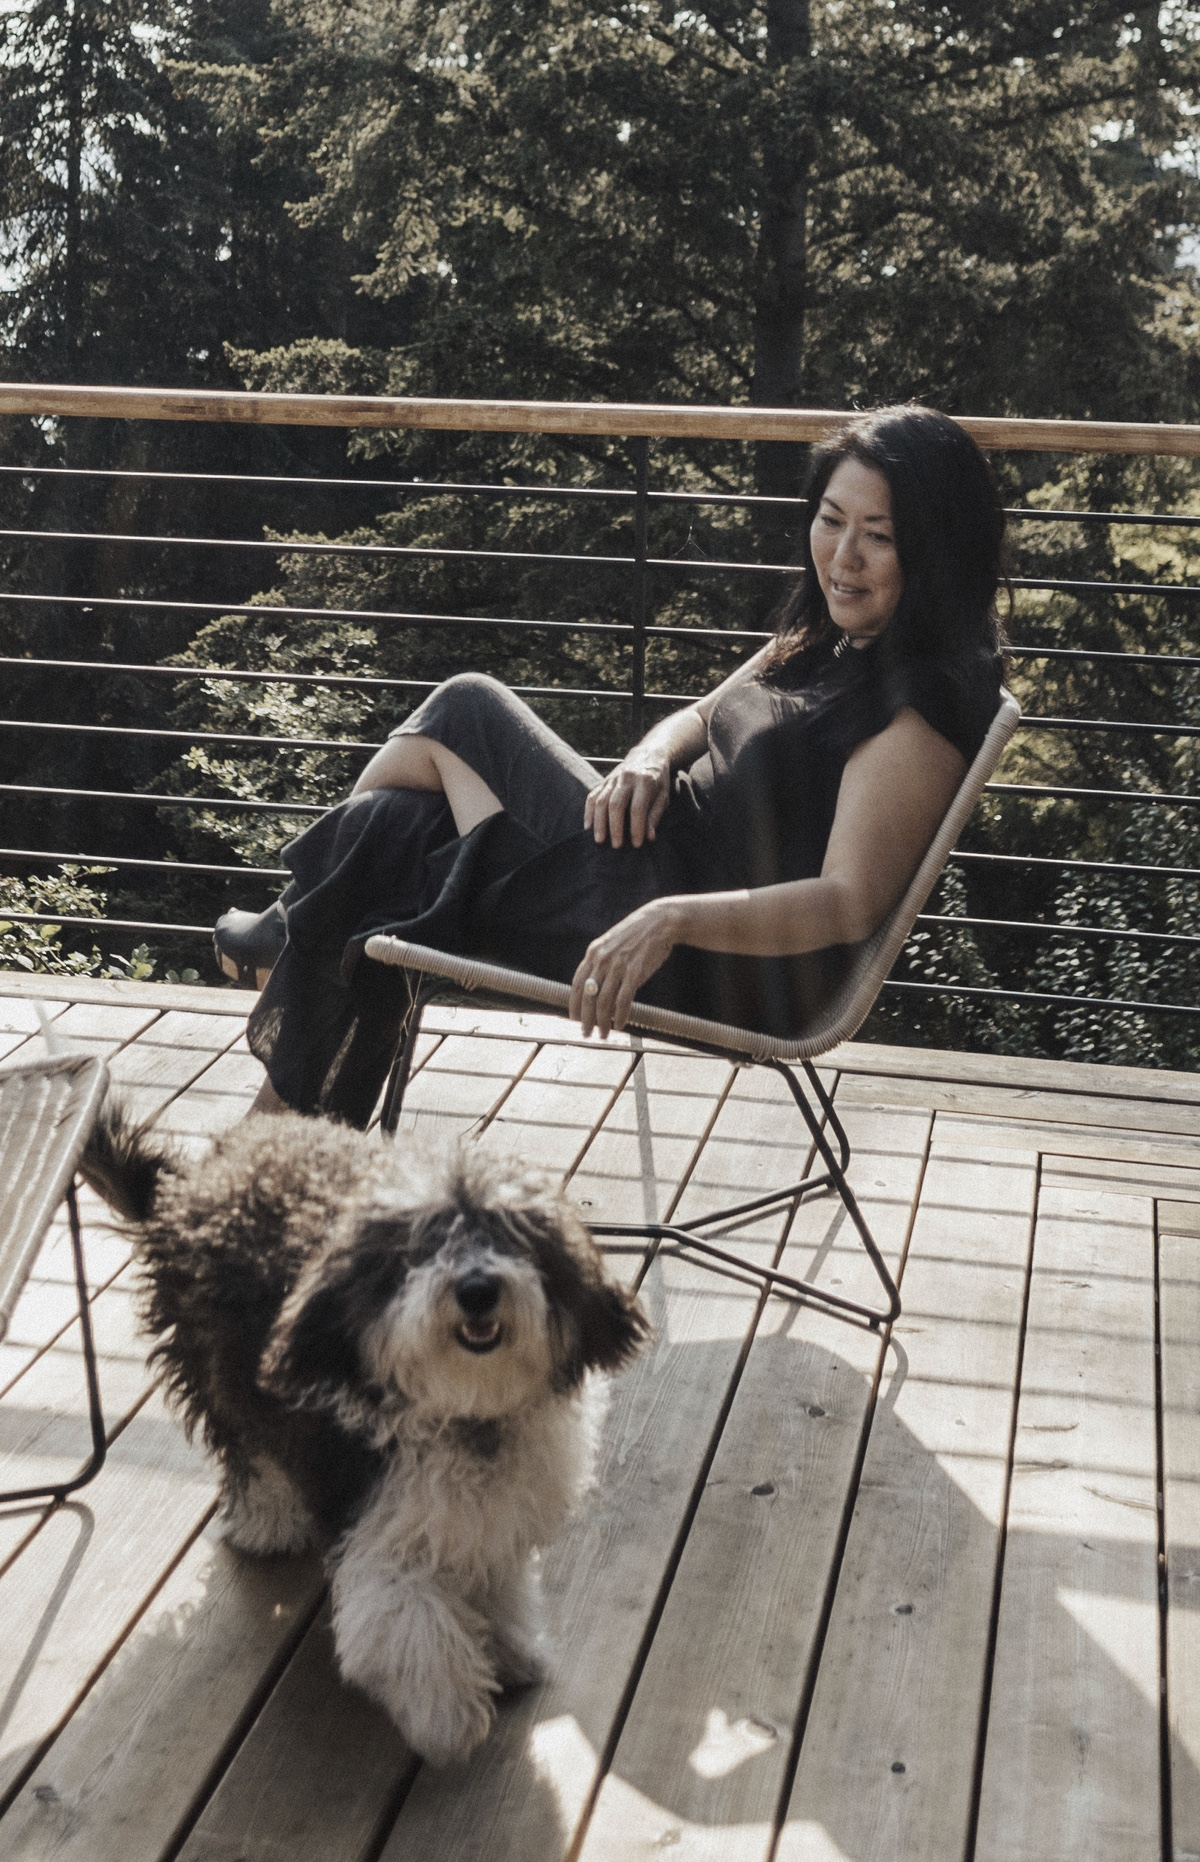 Kelly sitting on her deck reaching casually for her furry black and white dog who is running towards the camera.